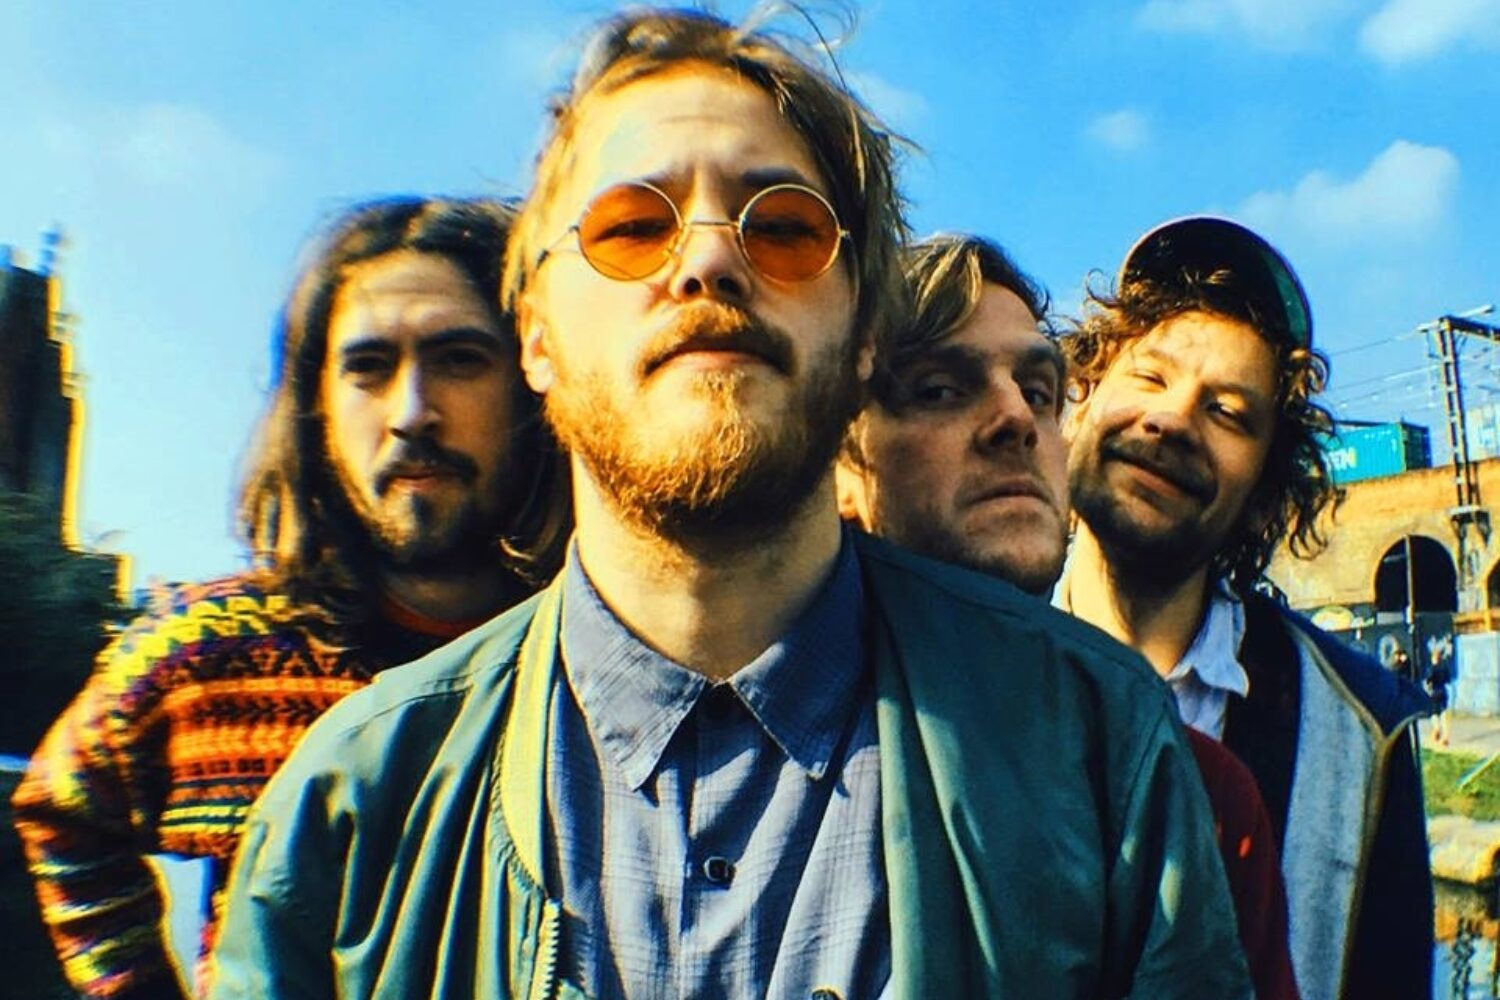 Francobollo get animated in the video for 'Future Lover'